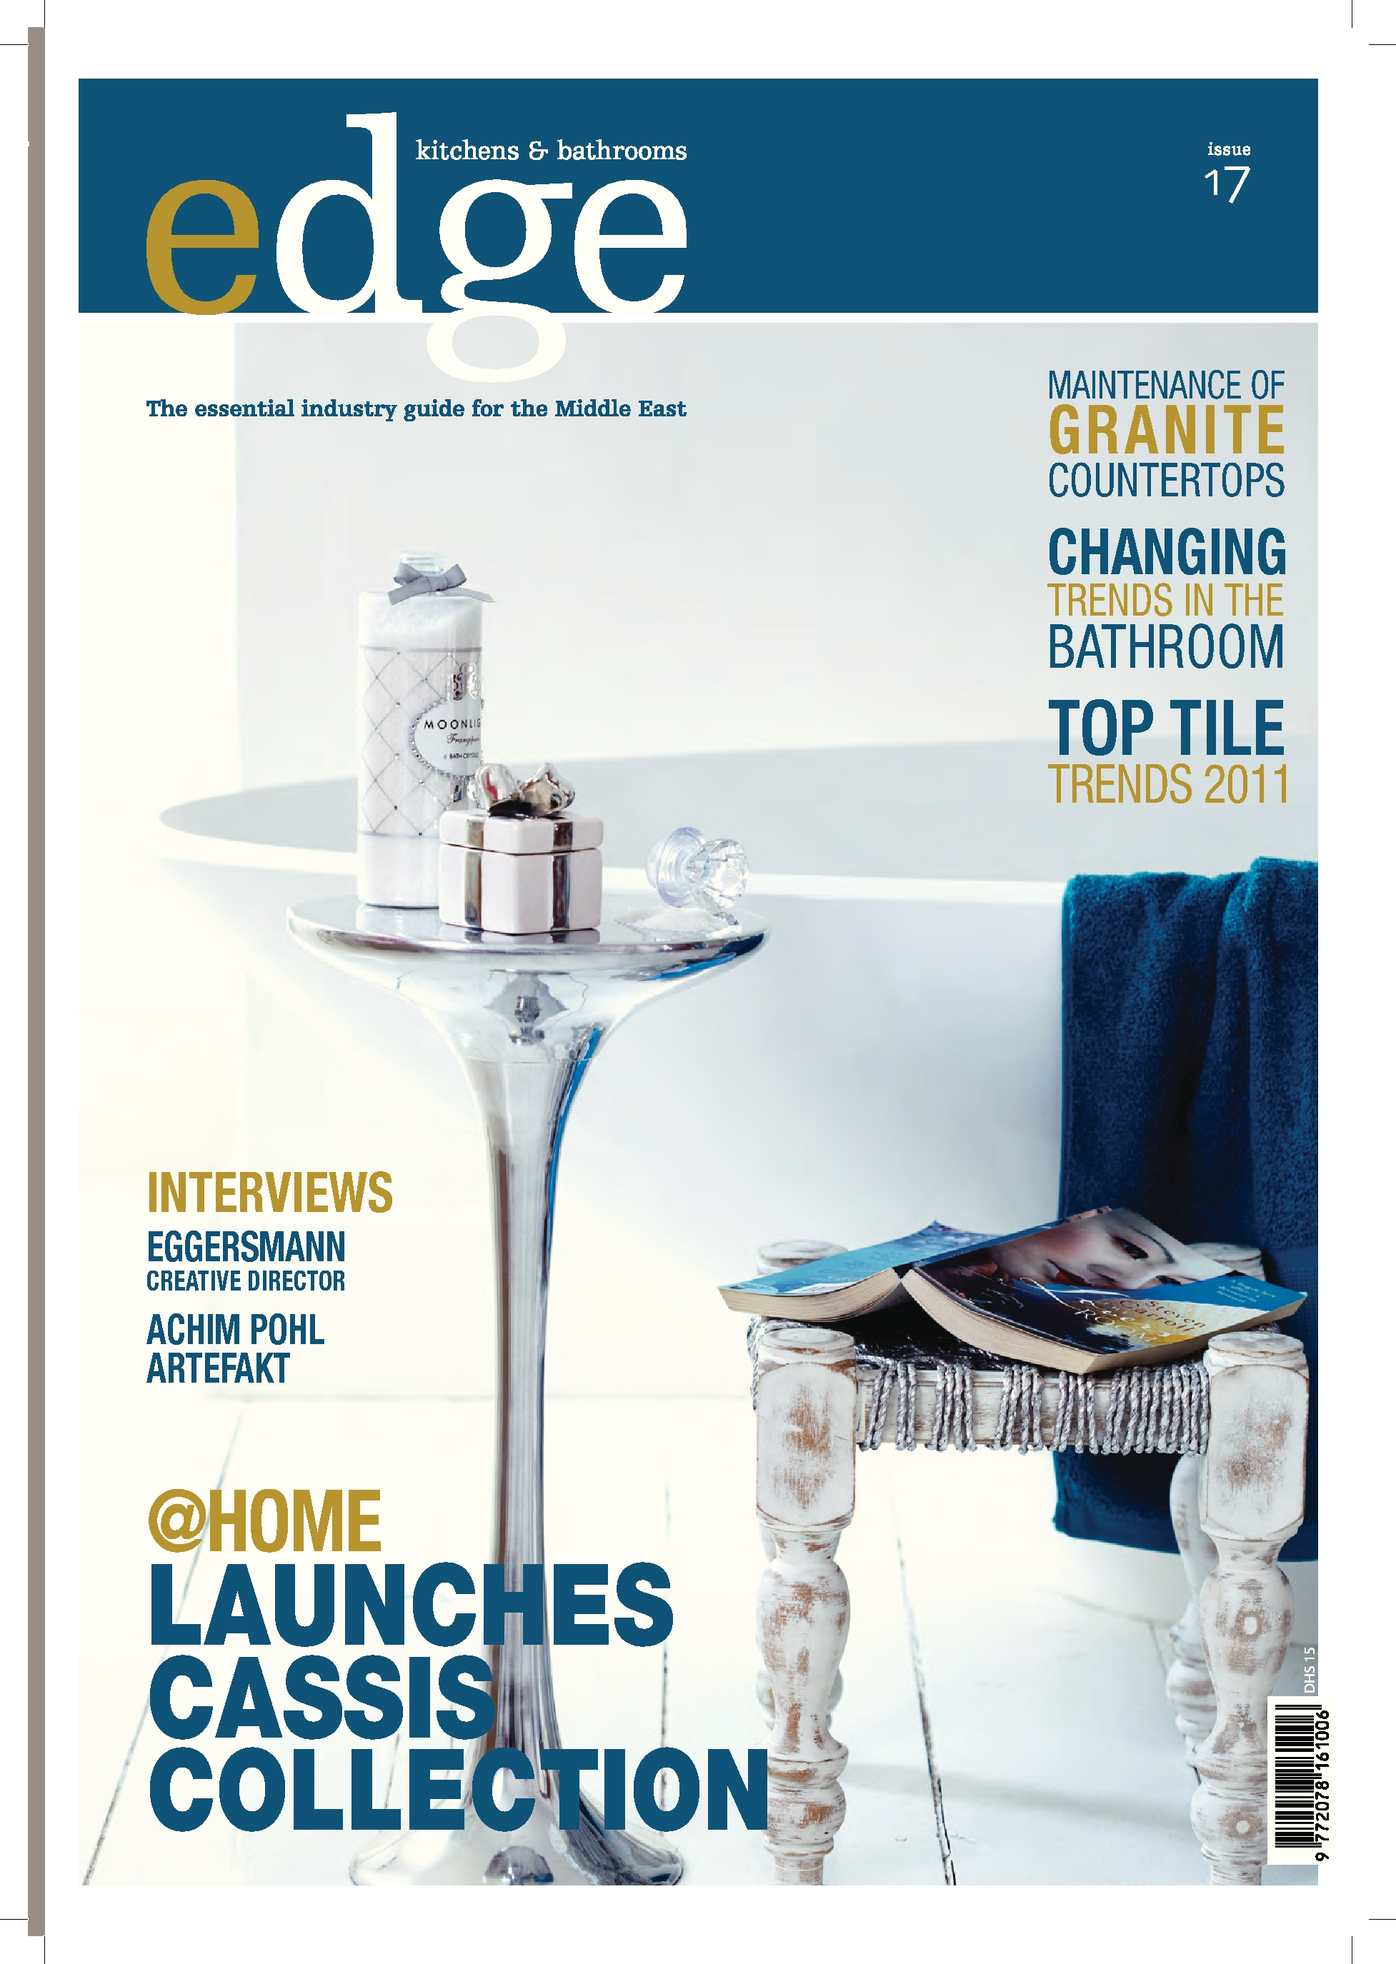 Calaméo - EDGE Kitchens & Bathrooms Magazine Issue 17